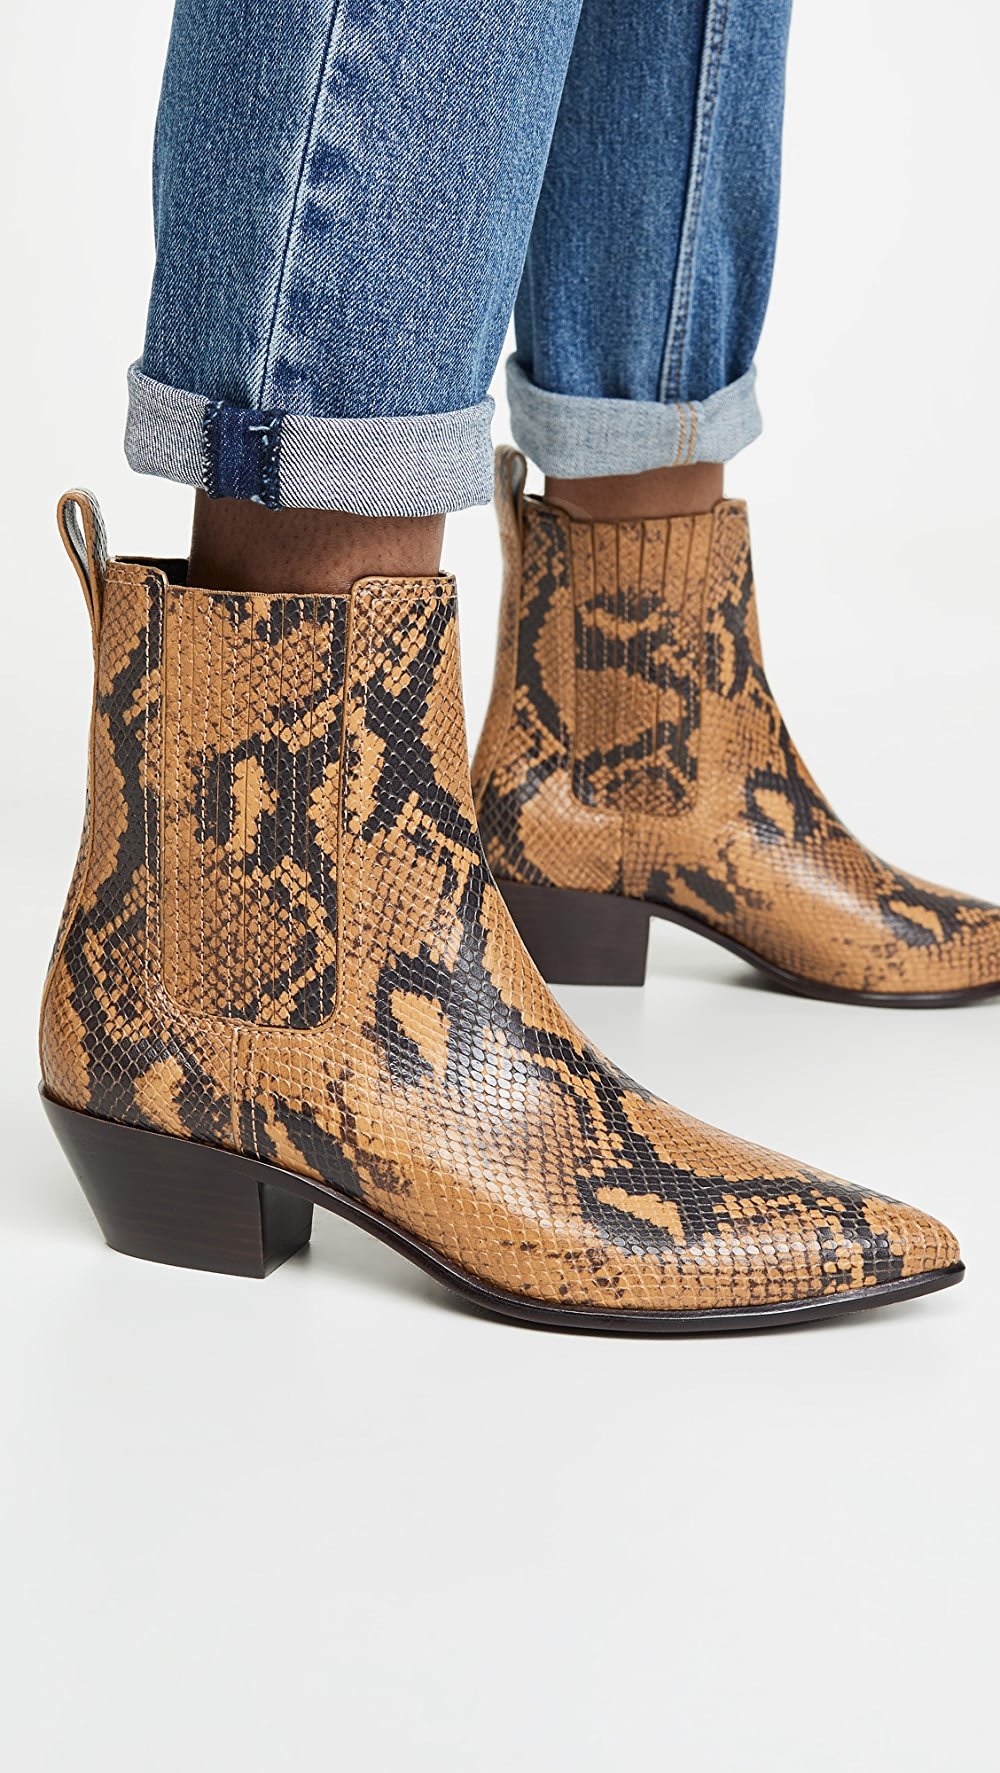 Adroit Loeffler Randall - Aylin Low Western Booties With Gore Fragrant Aroma